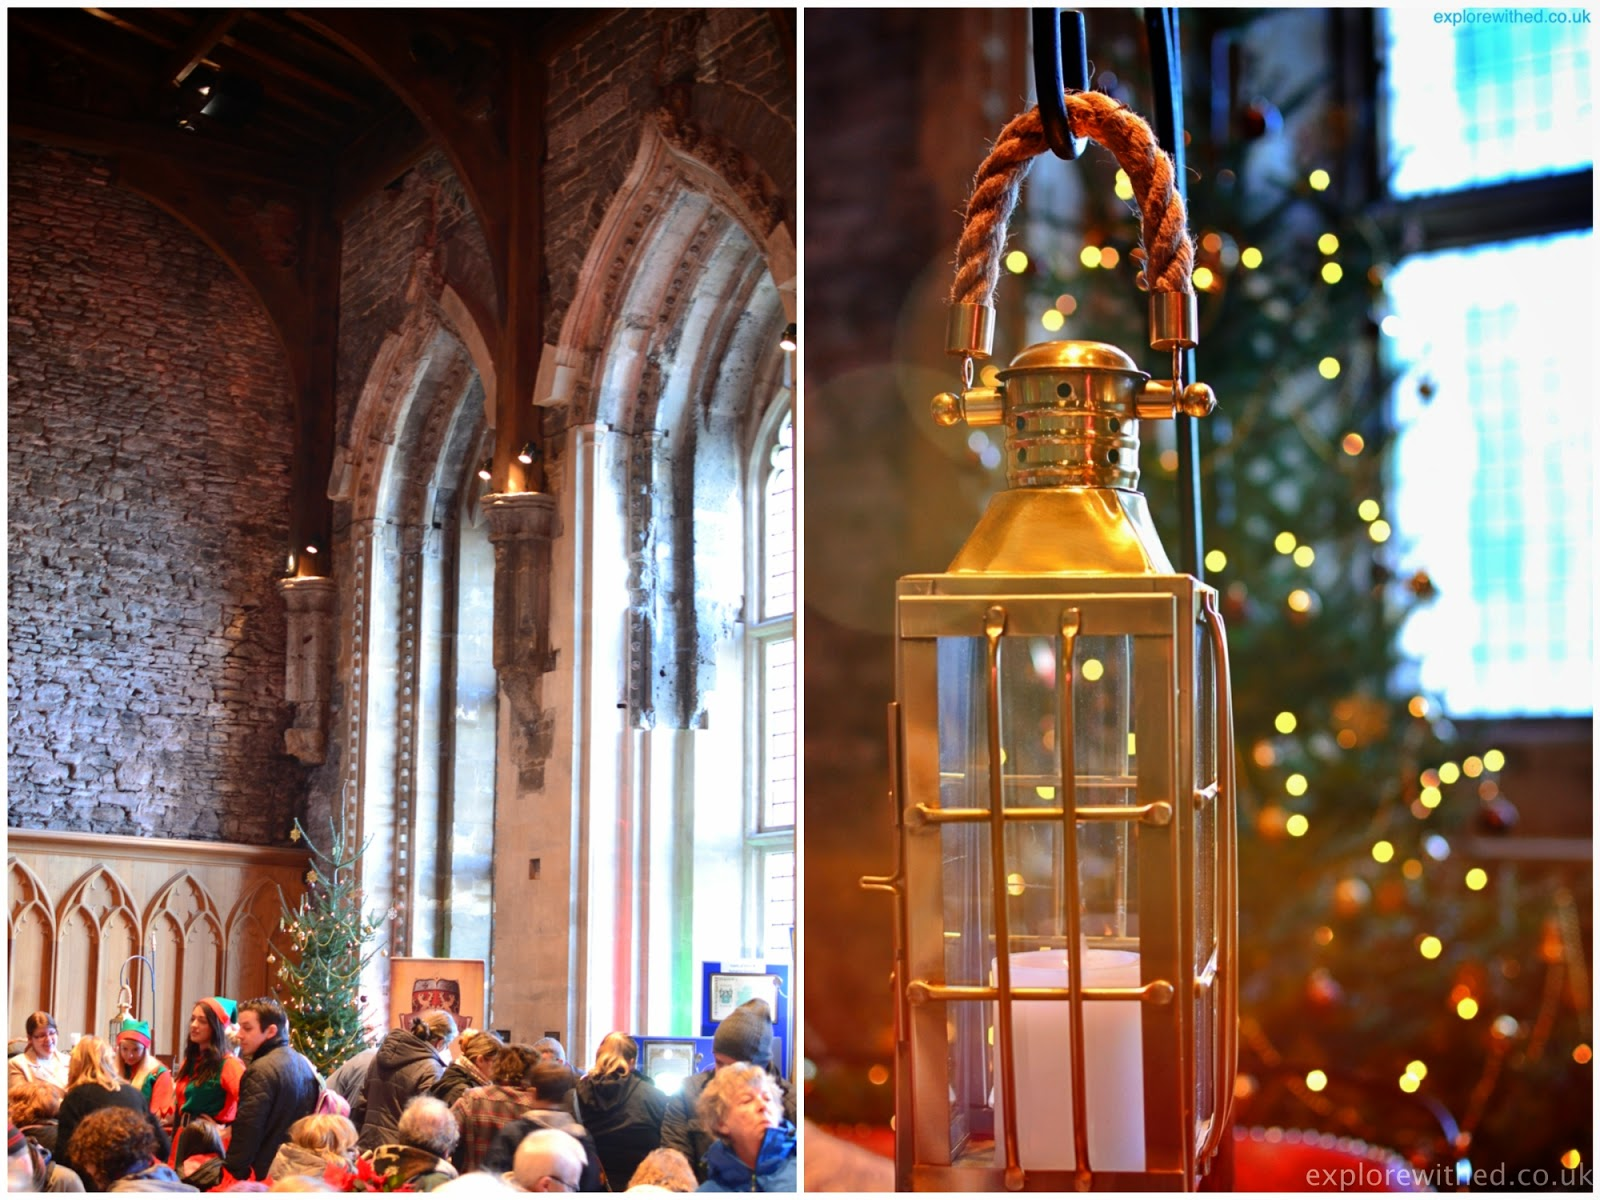 Caerphilly Castles Main Hall during A Christmas Event